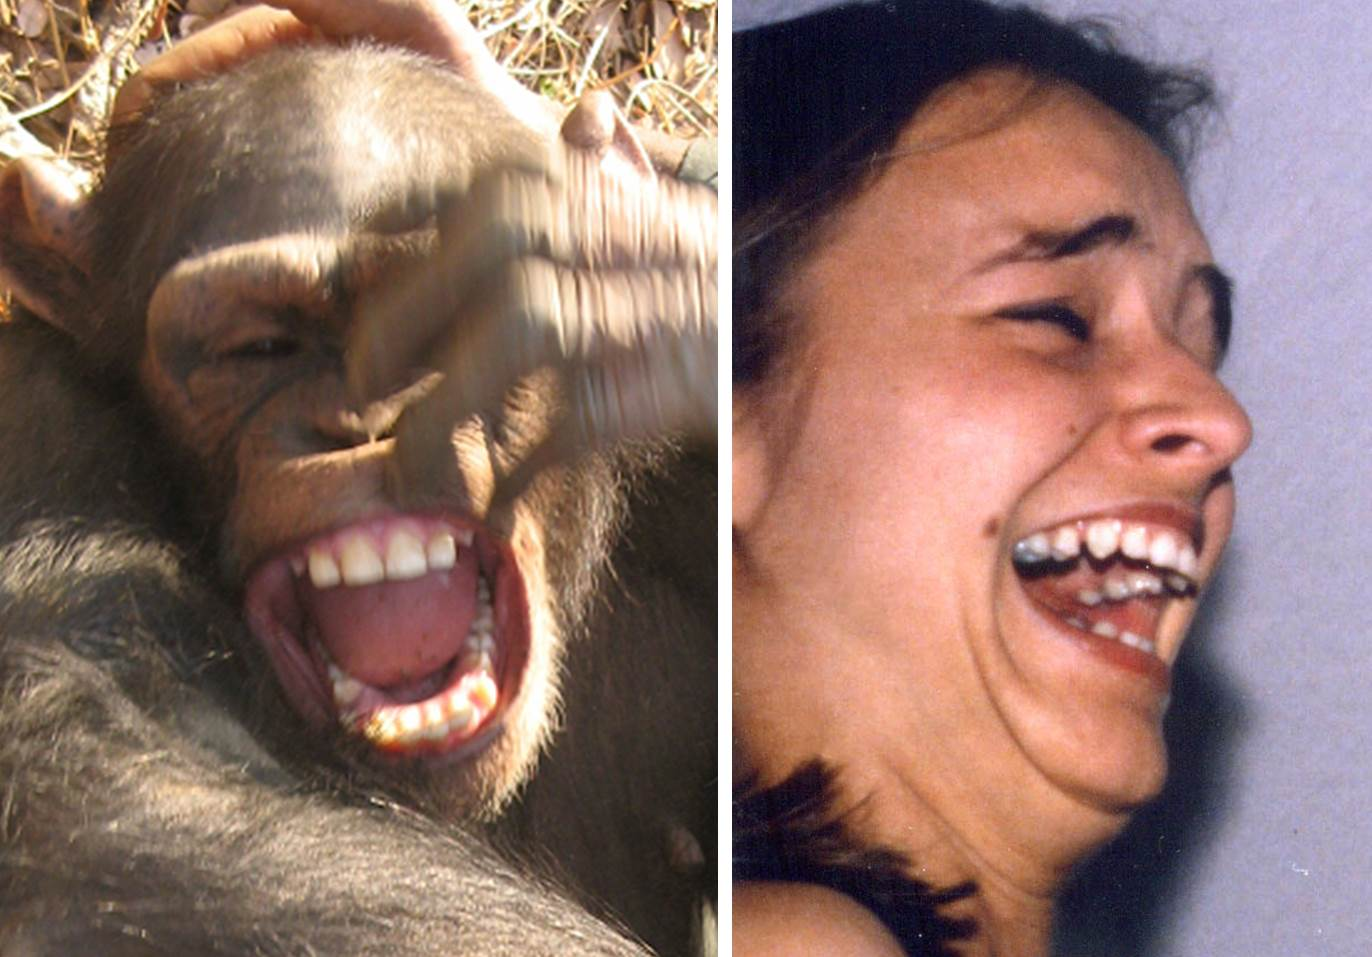 CHIMP SMILE